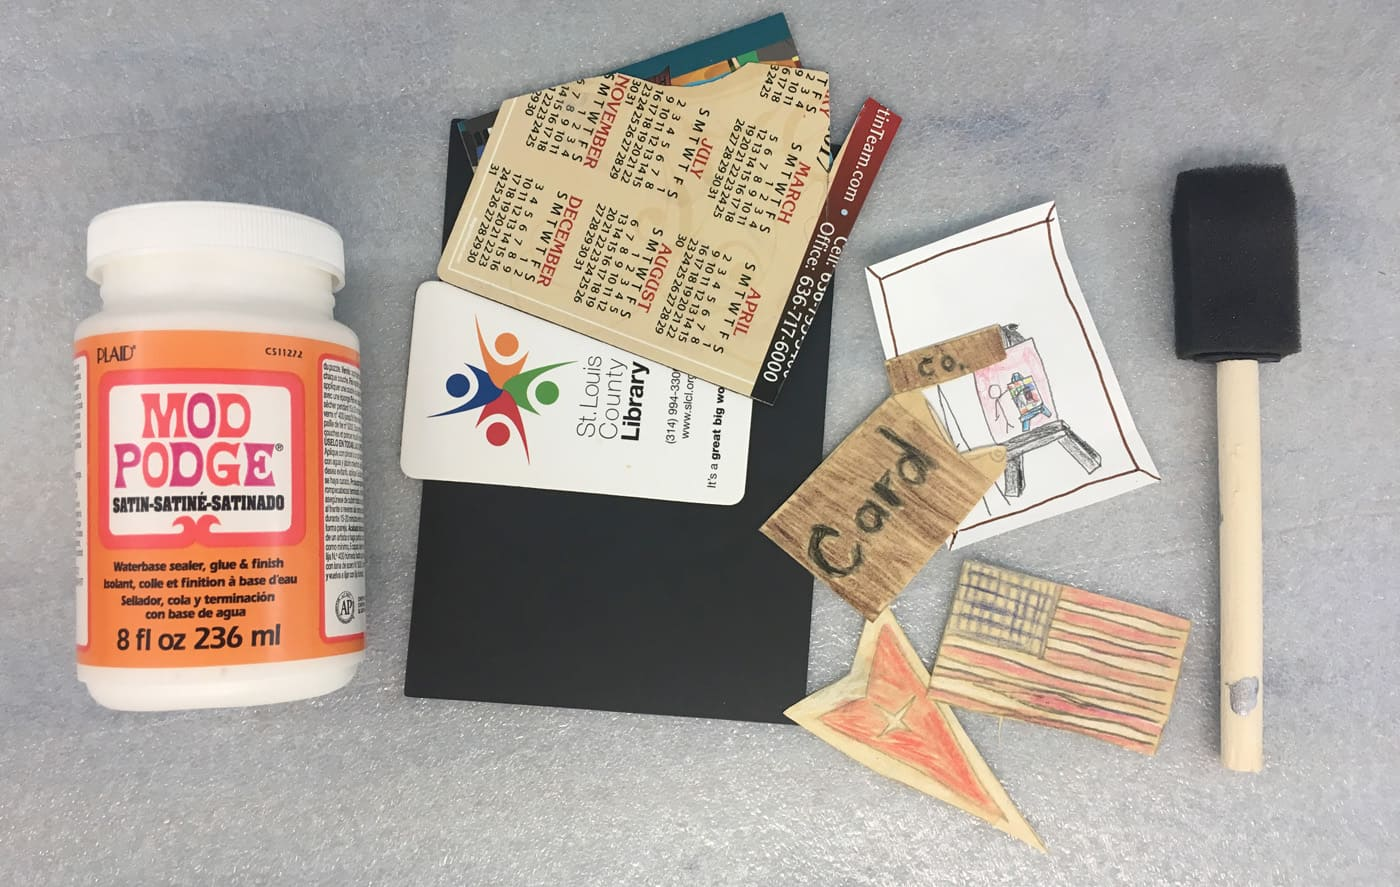 supplies for making decoupage art: mod podge, old sheet magnets, foam brush and kid drawings or doodles.